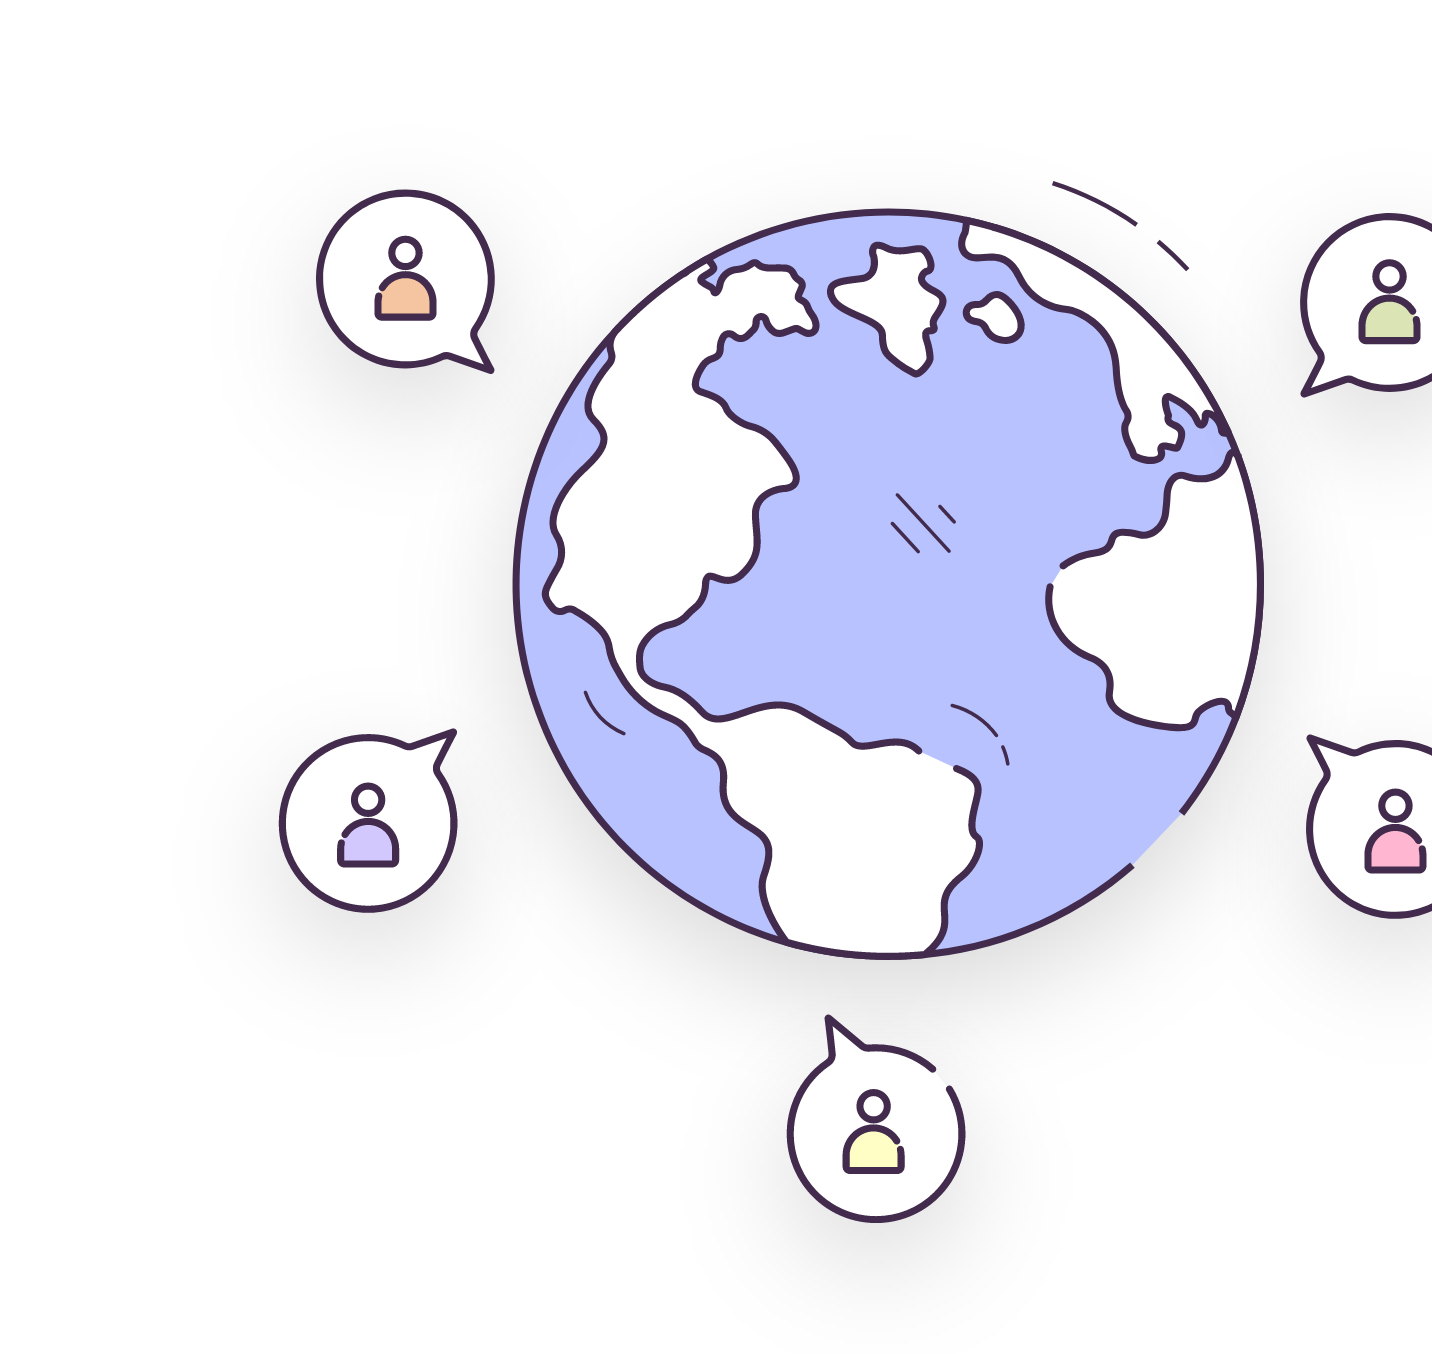 A world map with people icons dotted around it.